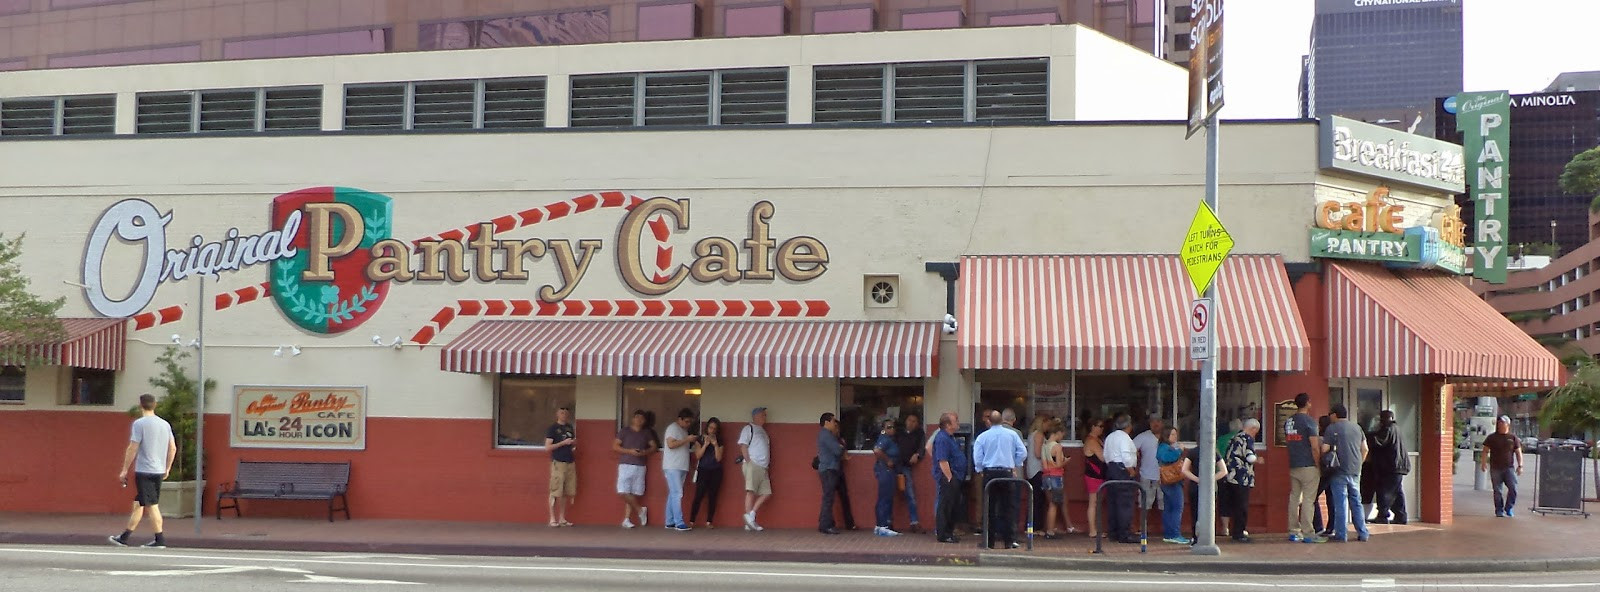 Best ideas about The Pantry Cafe . Save or Pin Culver City P O The Original Pantry Cafe Now.